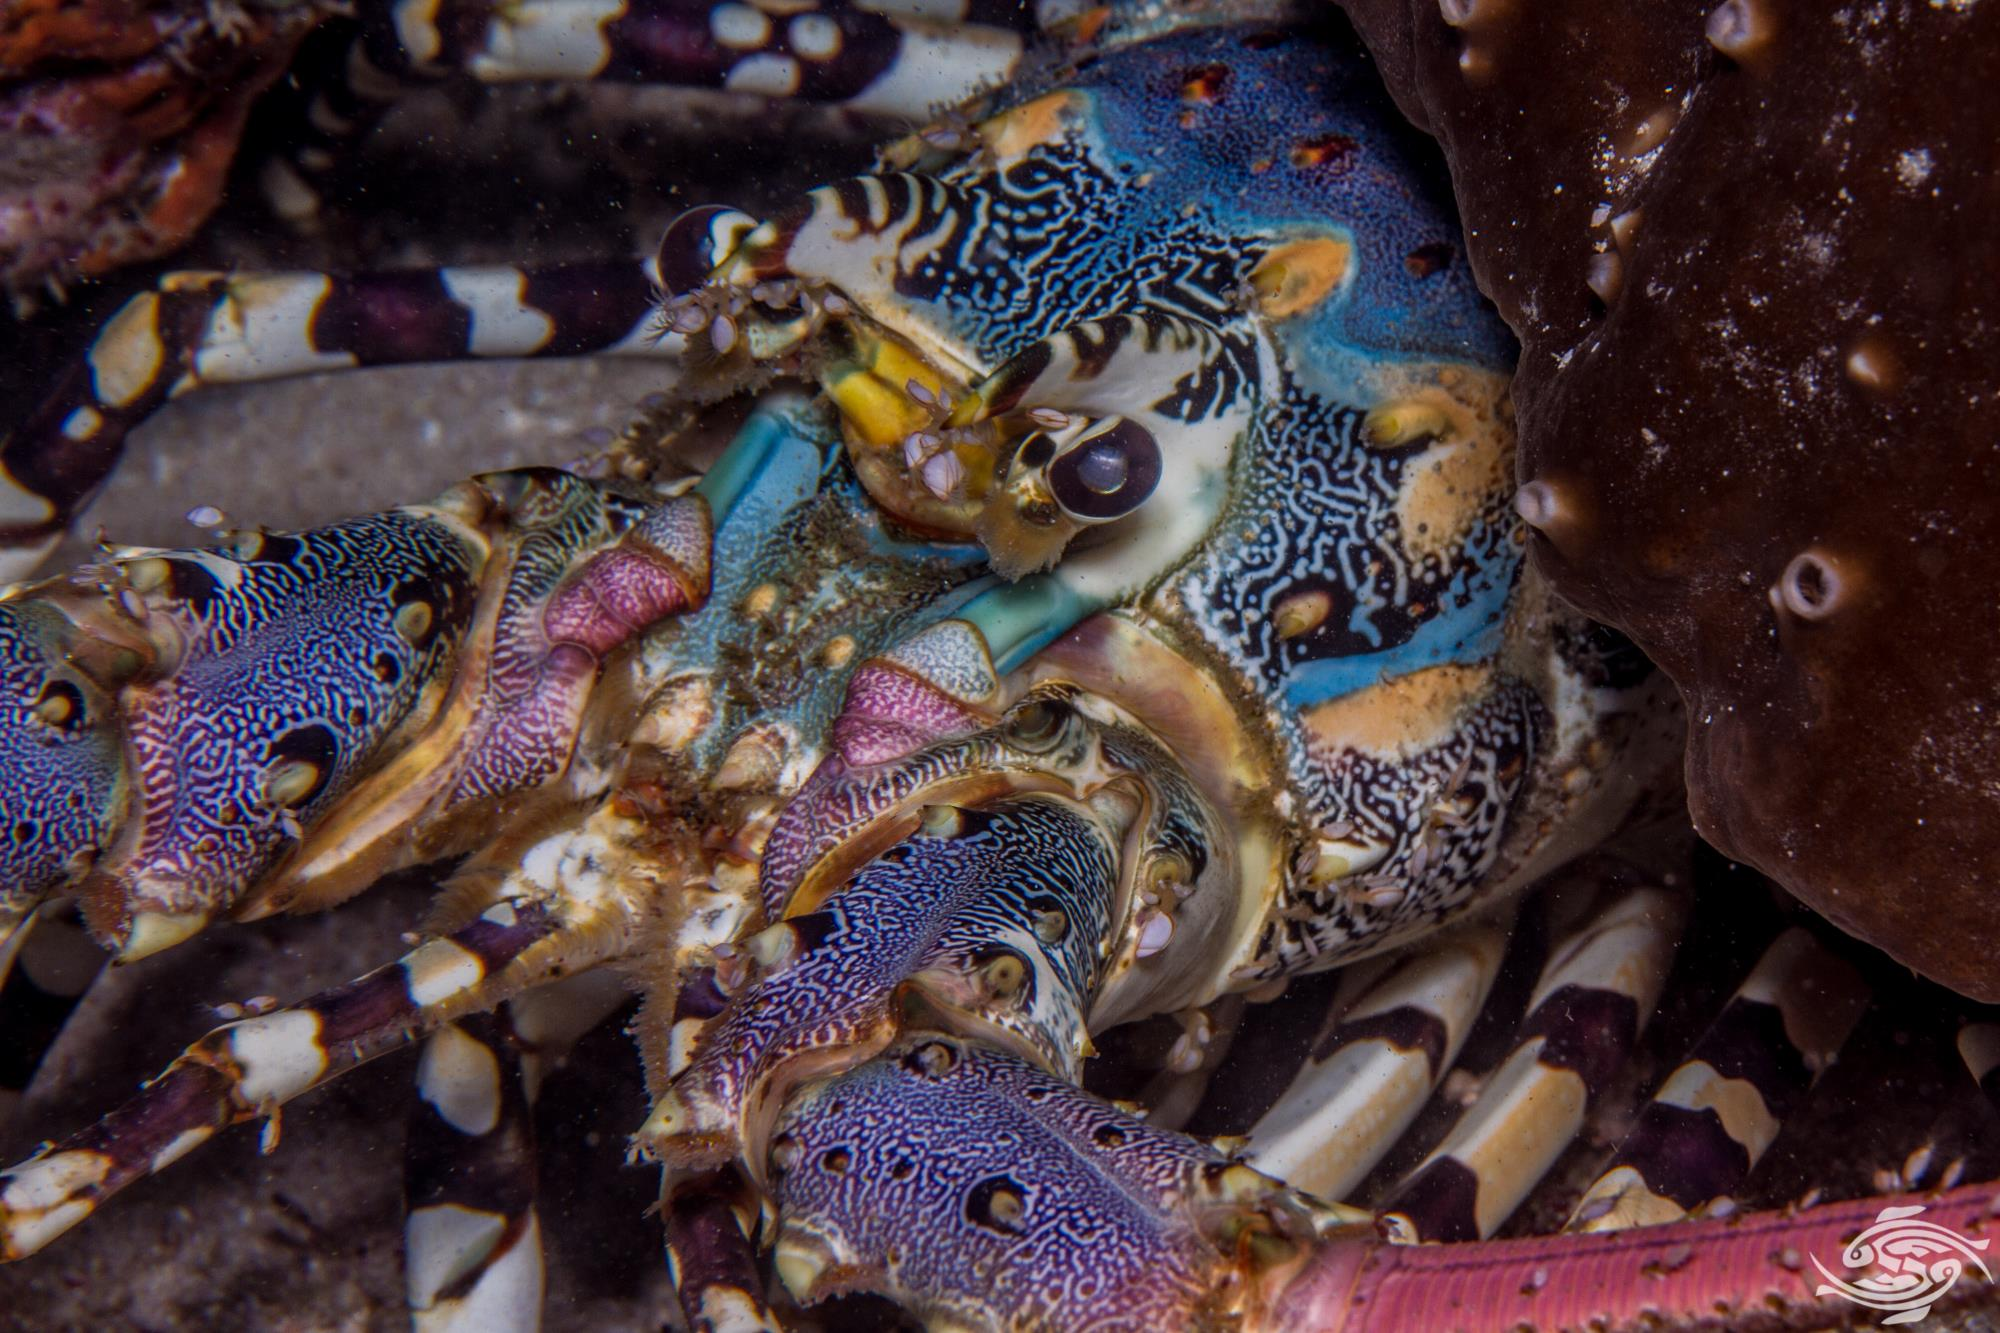 Ornate spiny lobster, Panulirus ornatus is also known as the Tropical rock lobster and the Ornate tropical rock lobster